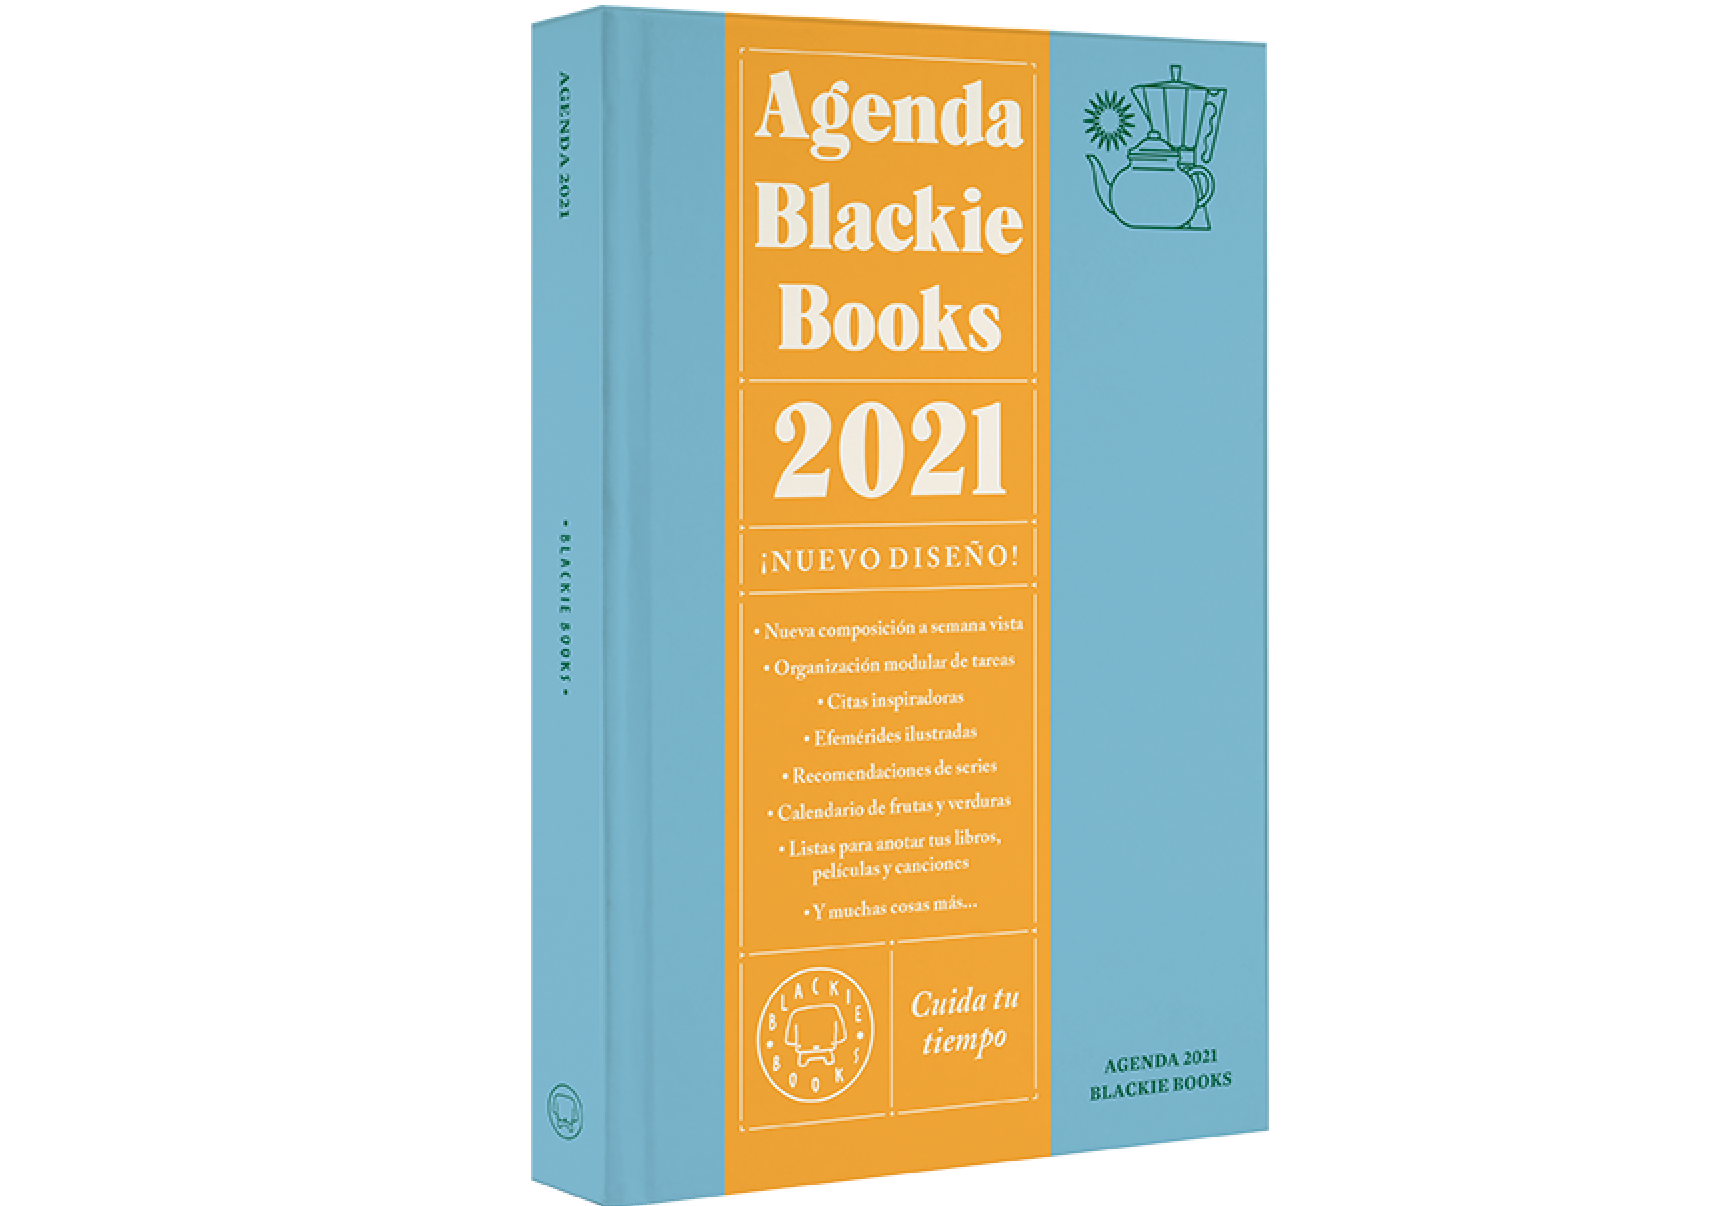 Agenda Blackie Books 2021